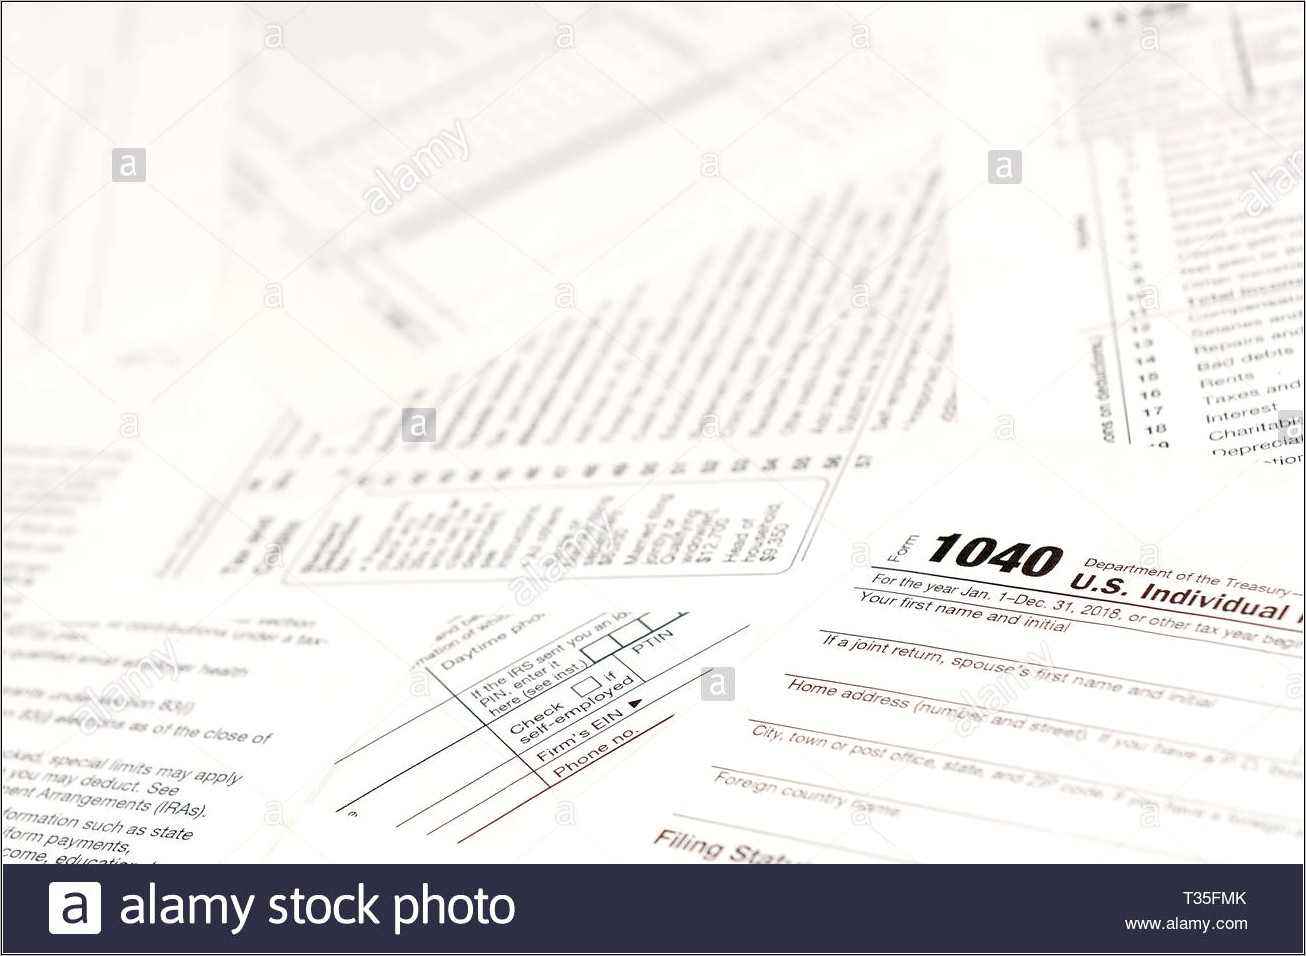 Blank 1040 Income Tax Form